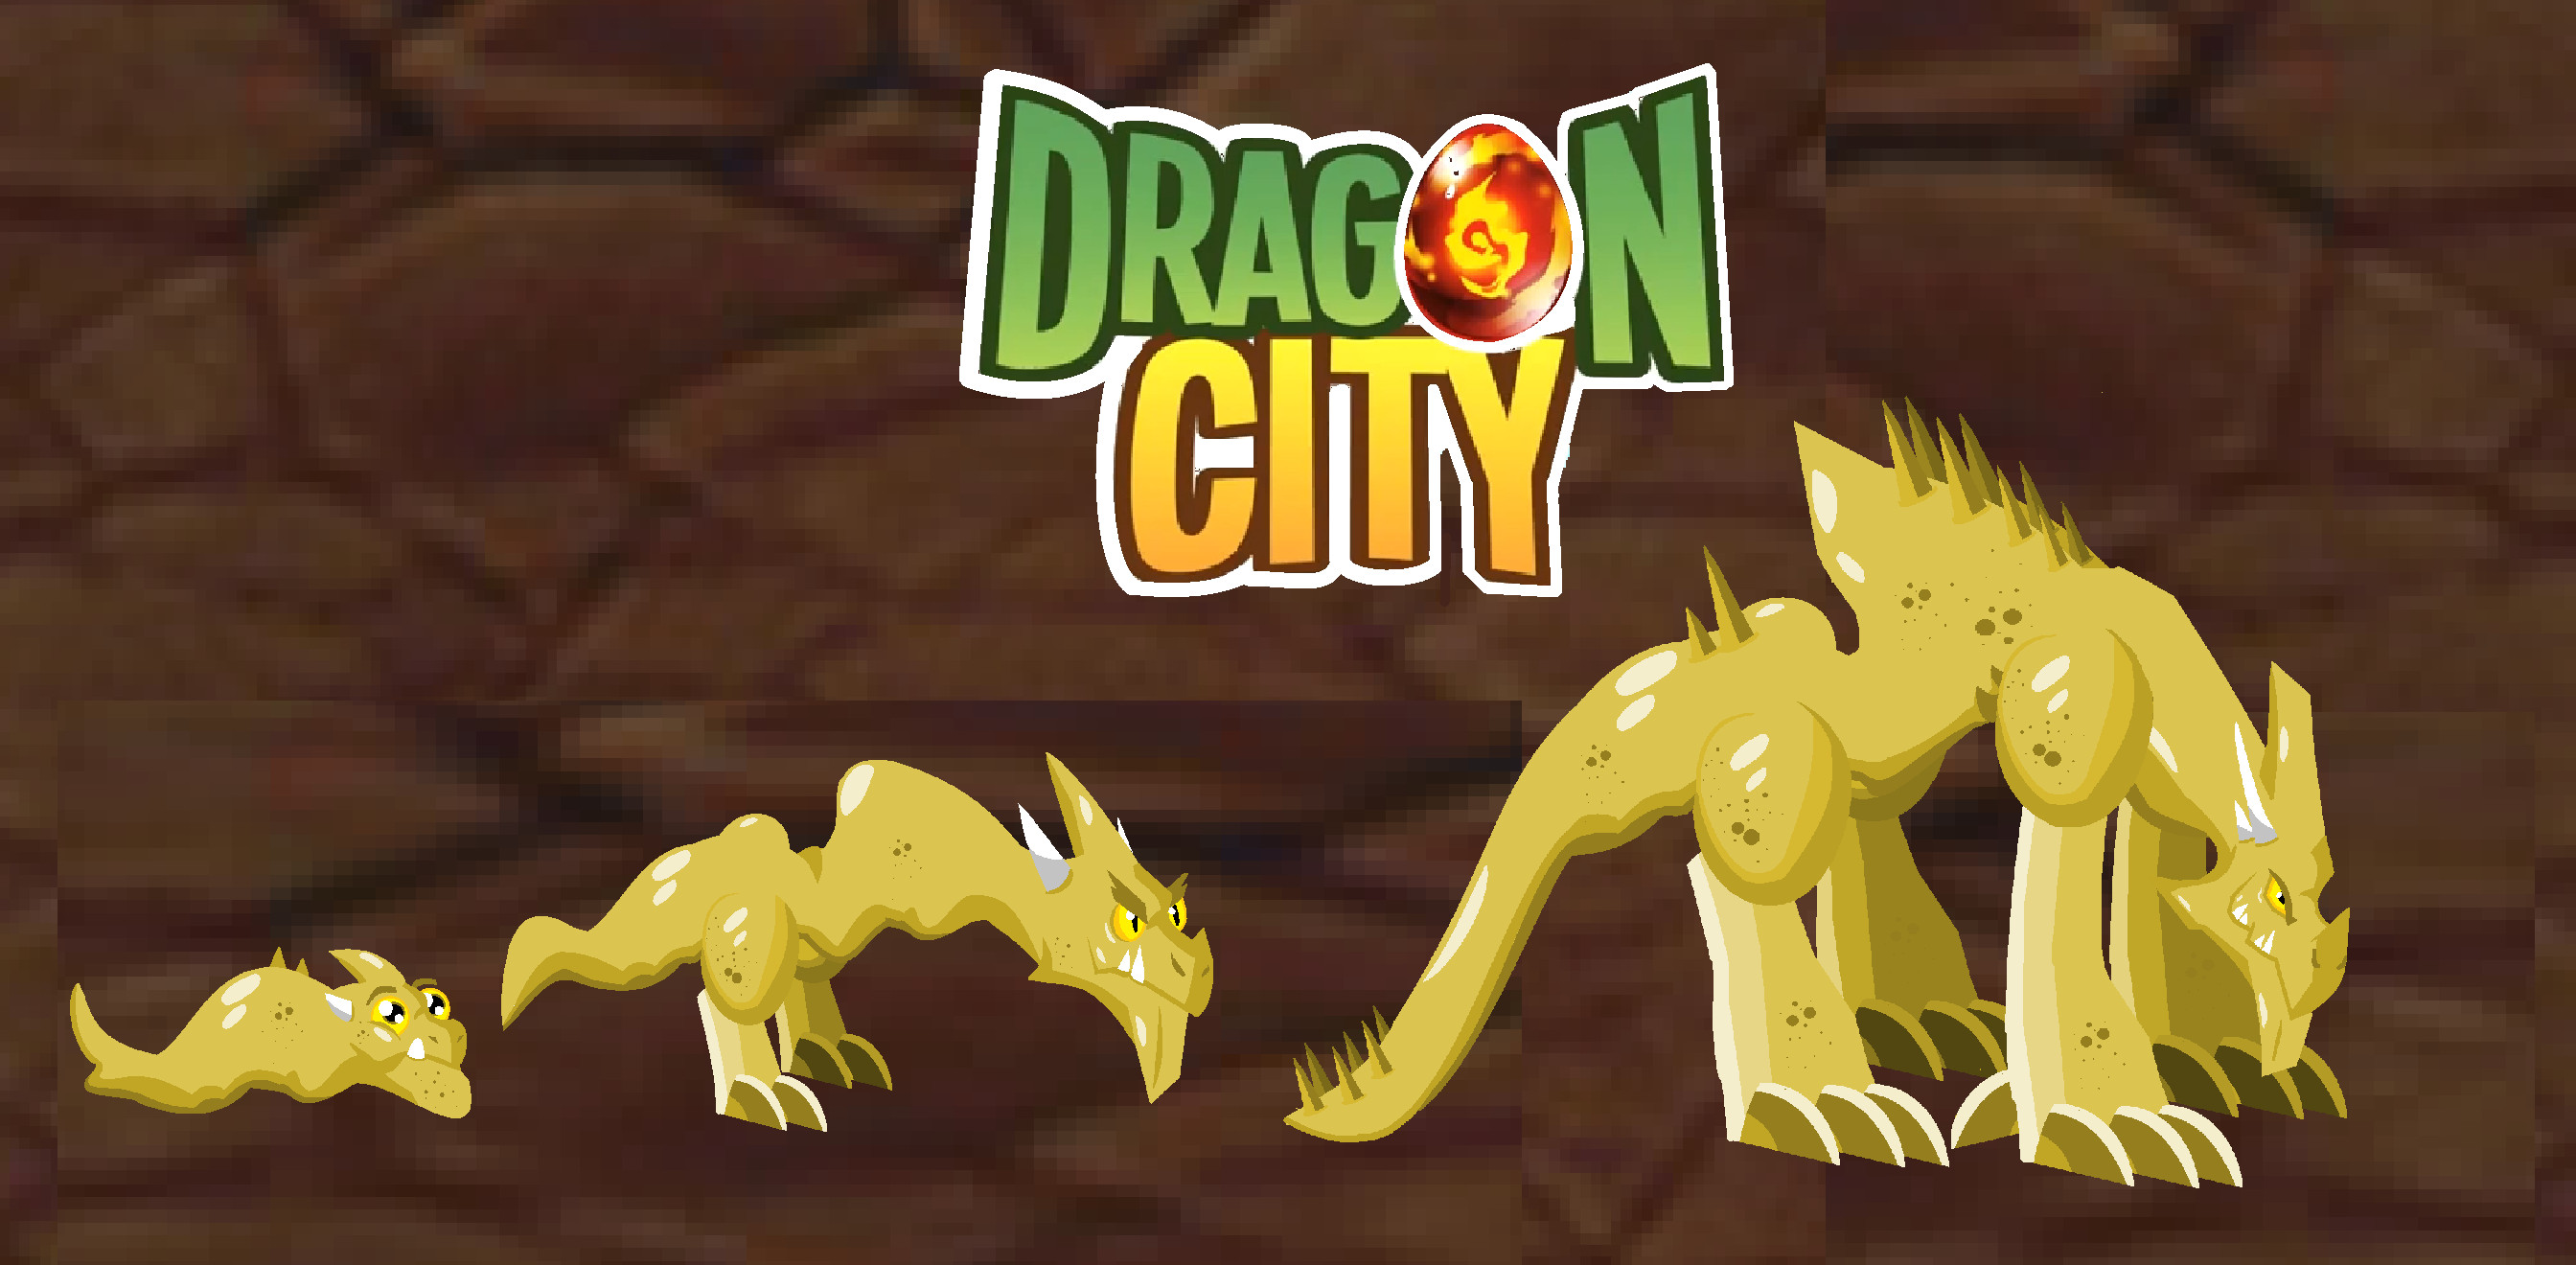 Dragon_city_dragon_designs_sand_dragon_by_pivotnaza-d5h1lmi.jpg